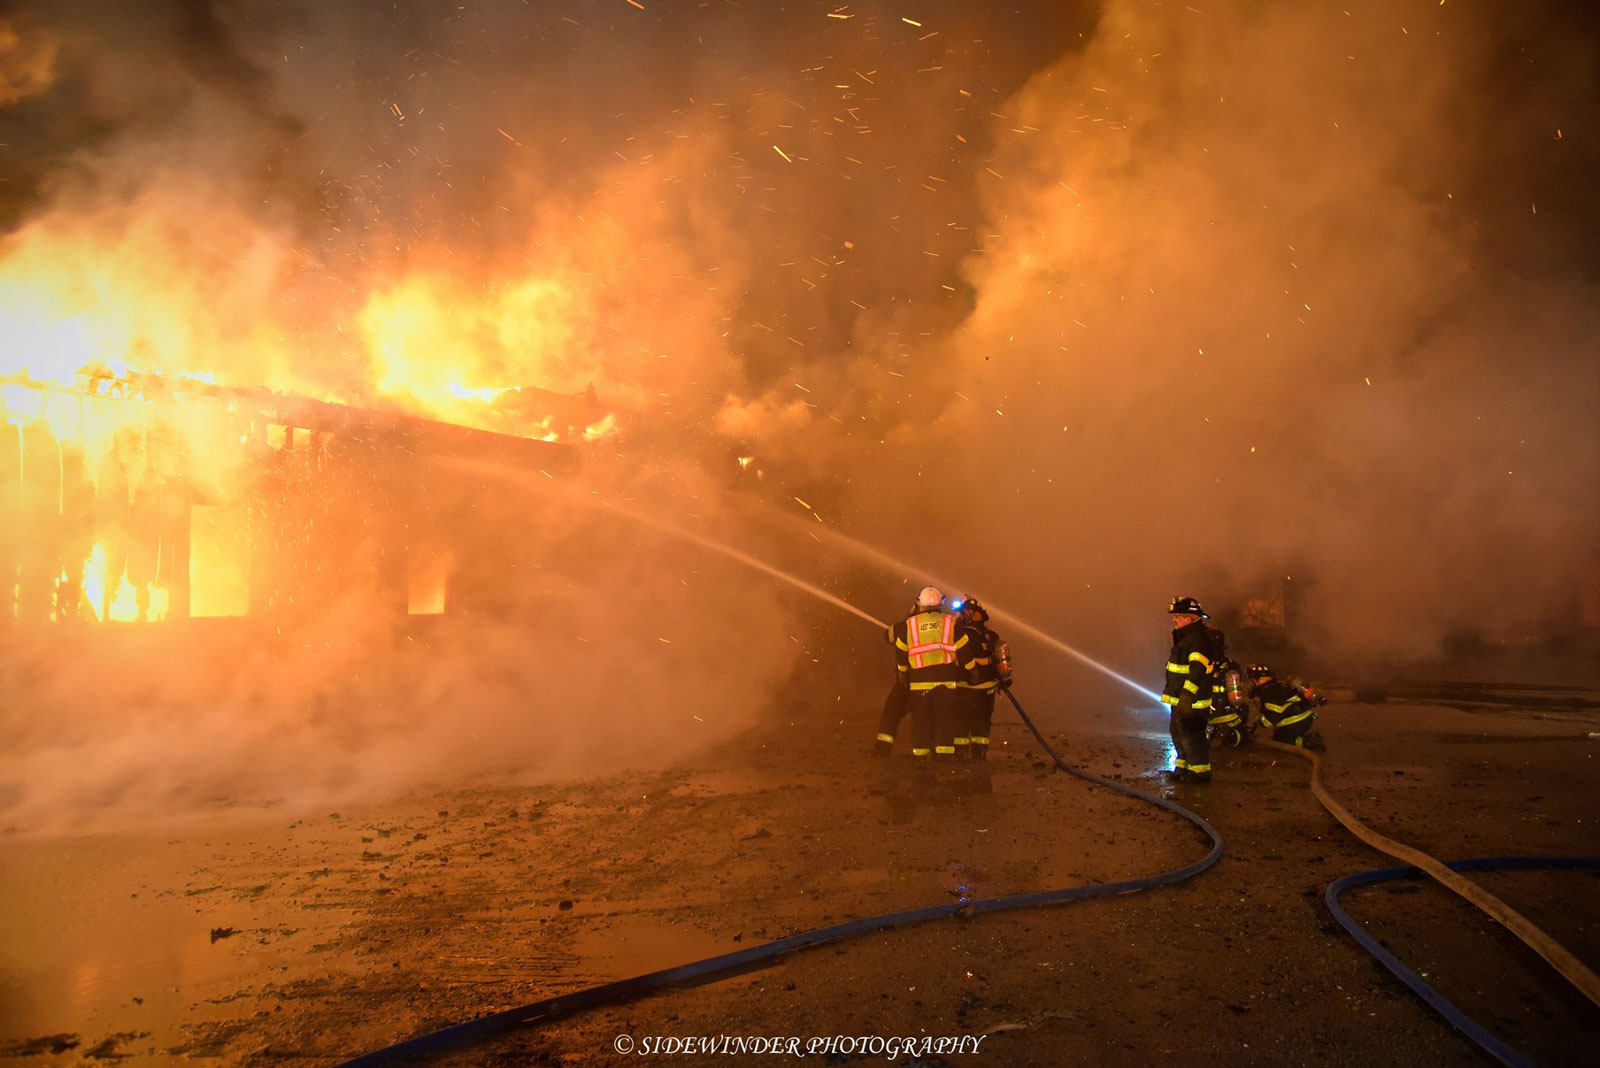 Firefighters aim two hoselines at the burning commercial garage